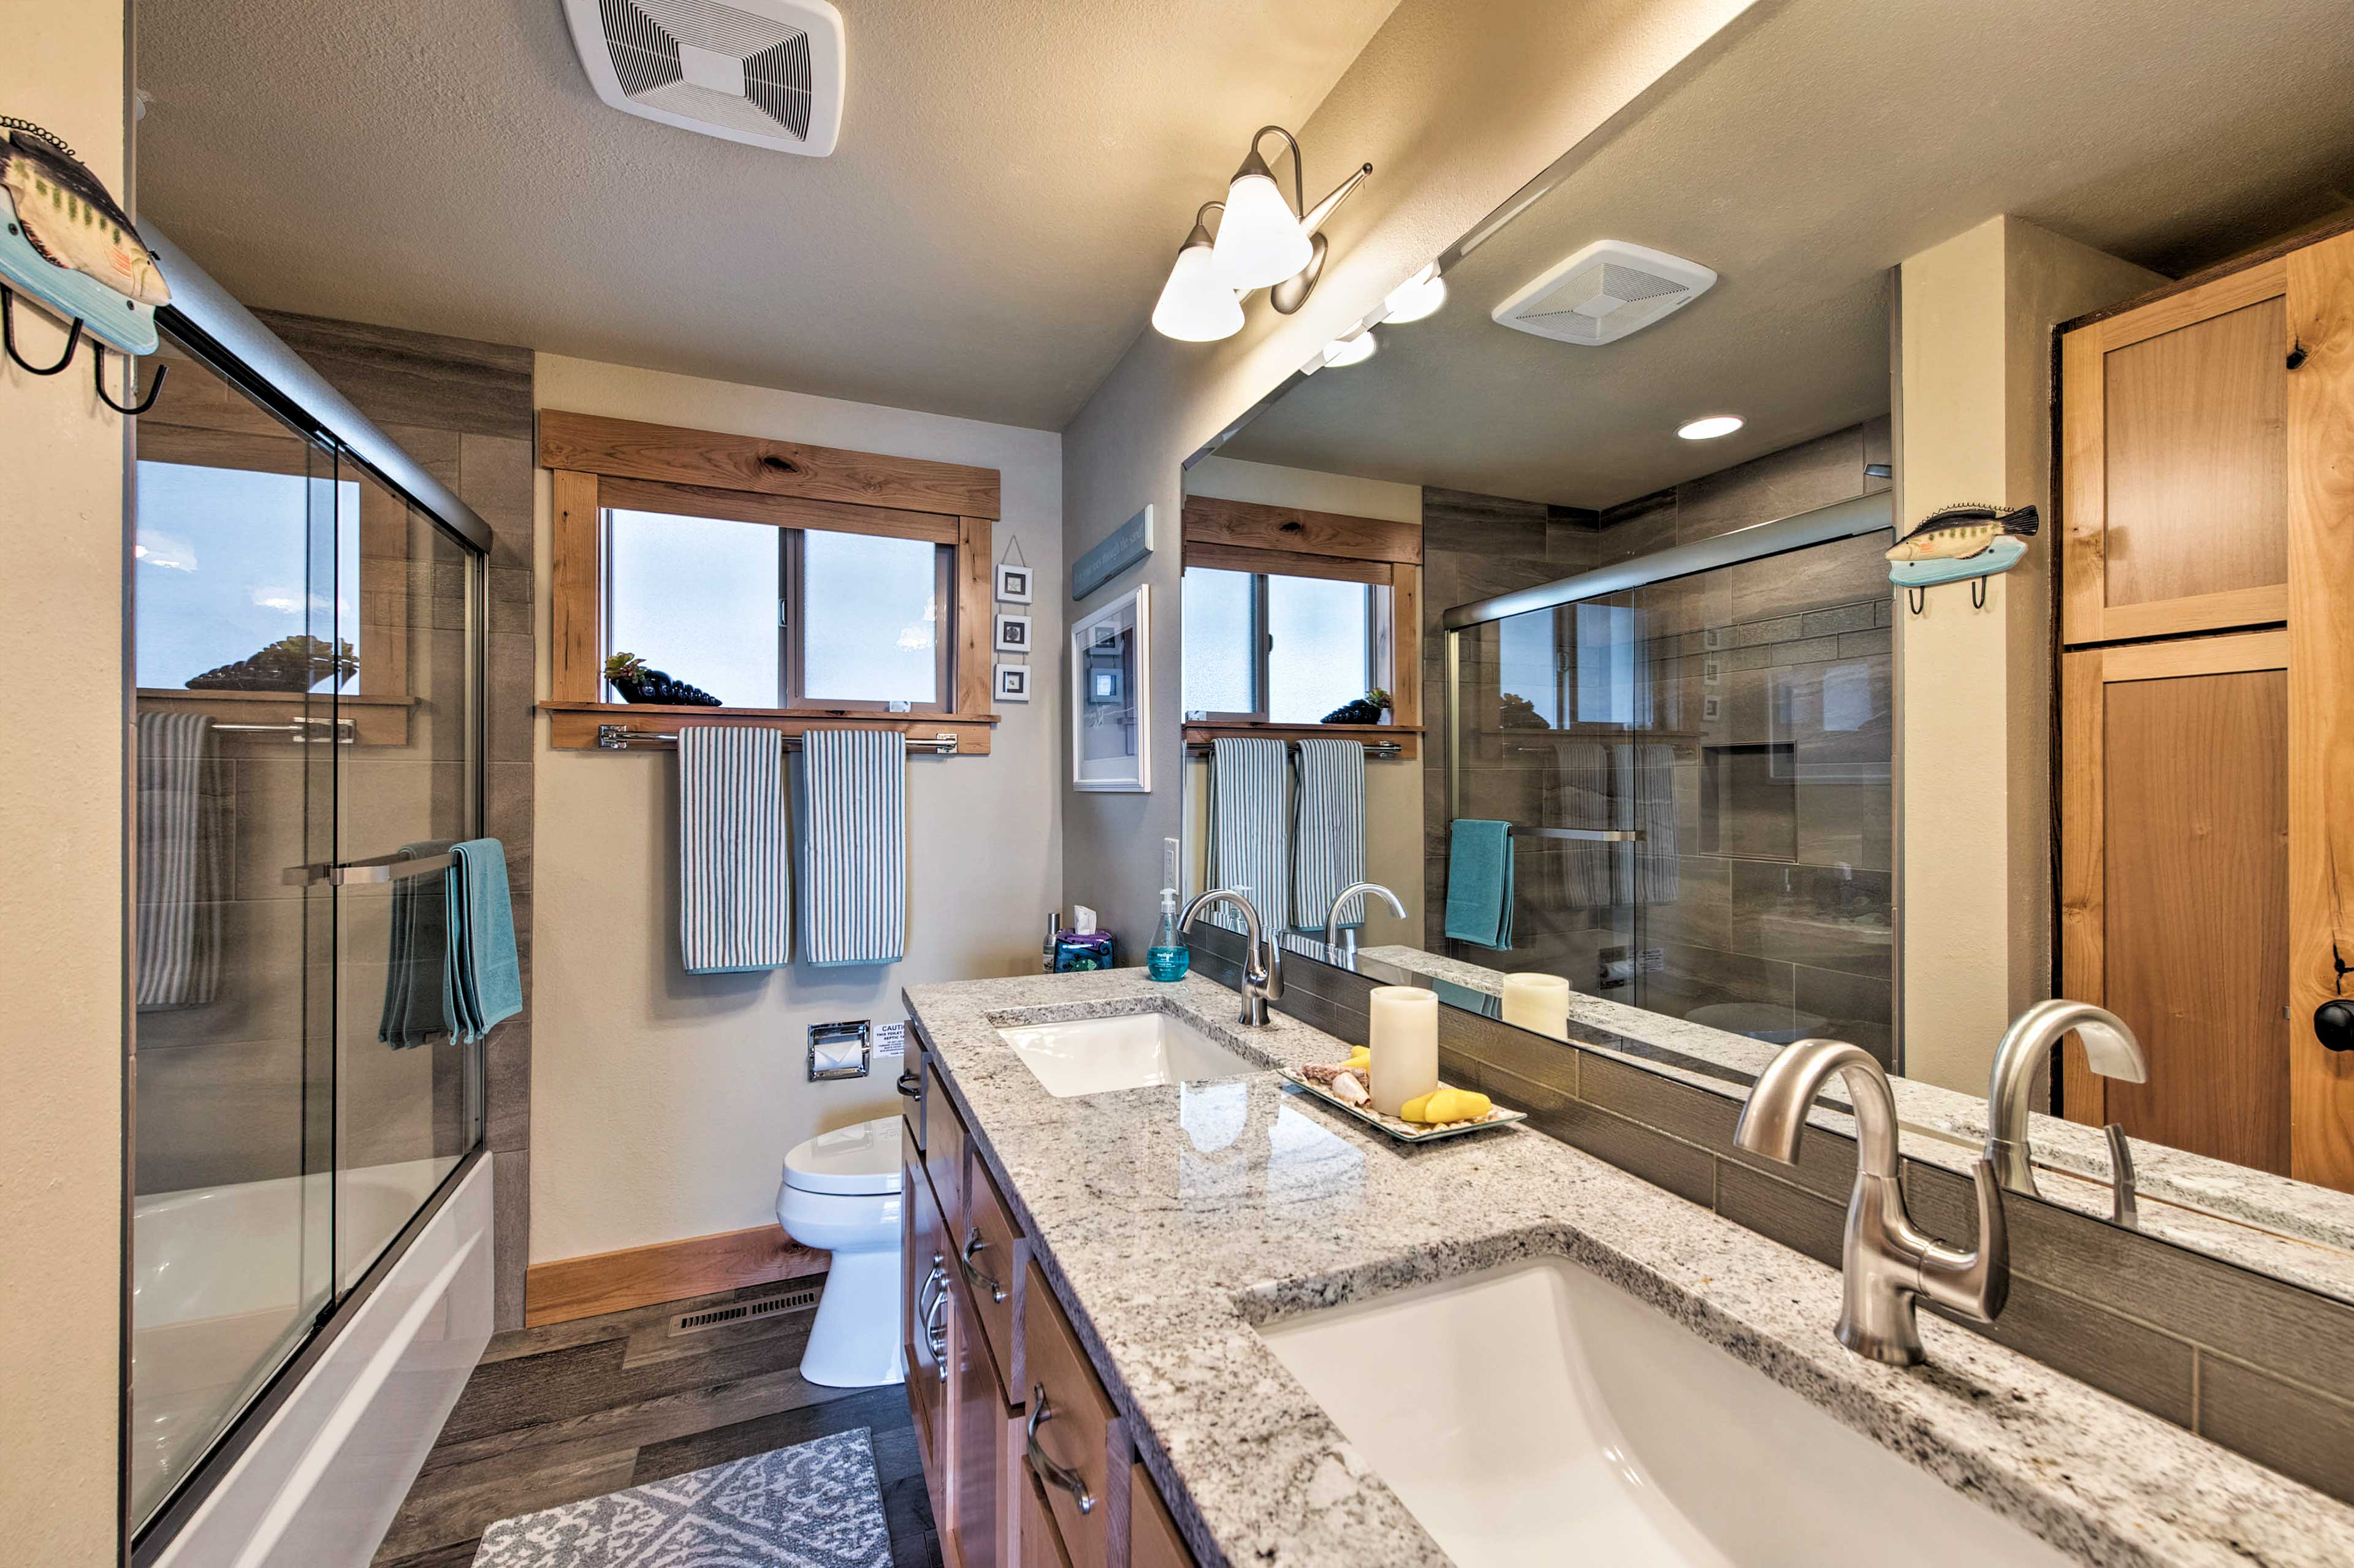 Dual sinks provide plenty of space to freshen up in the master bathroom.